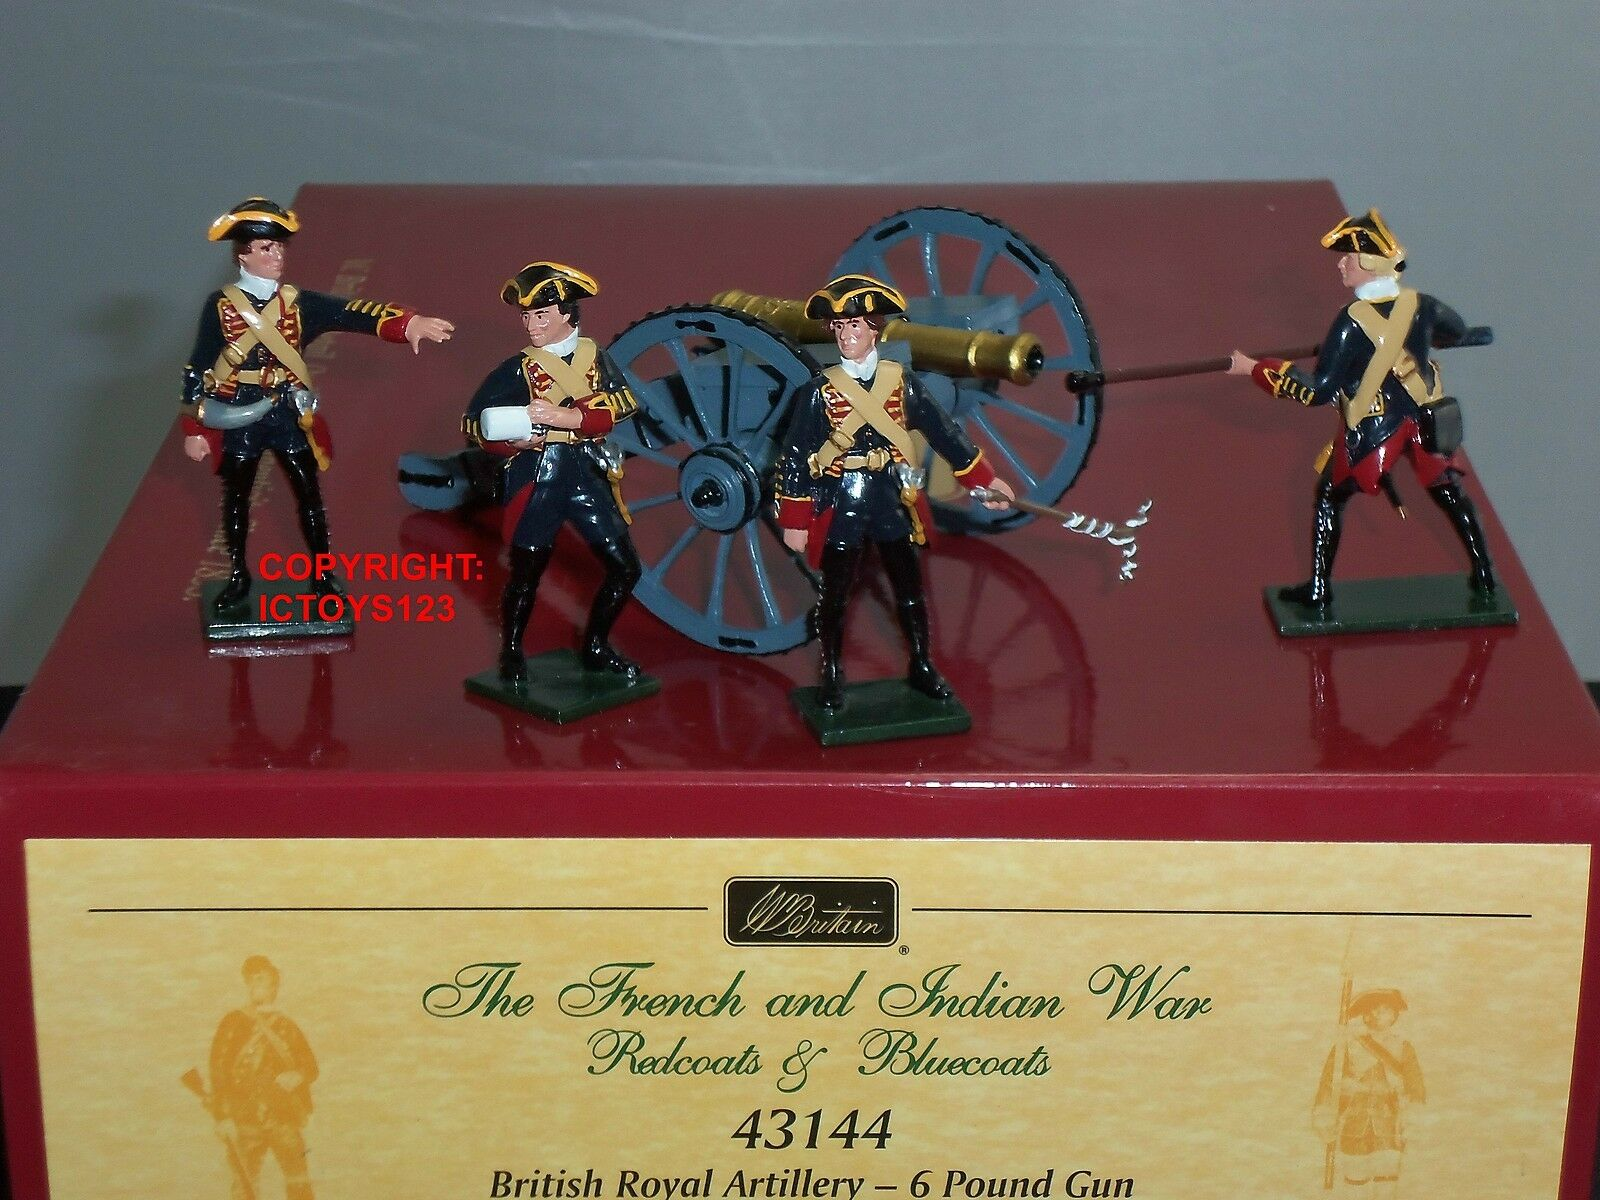 BRITAINS 43144 blueECOATS blueECOATS blueECOATS BRITISH ROYAL ARTILLERY 6LB GUN + CREW TOY SOLDIER SET 571946